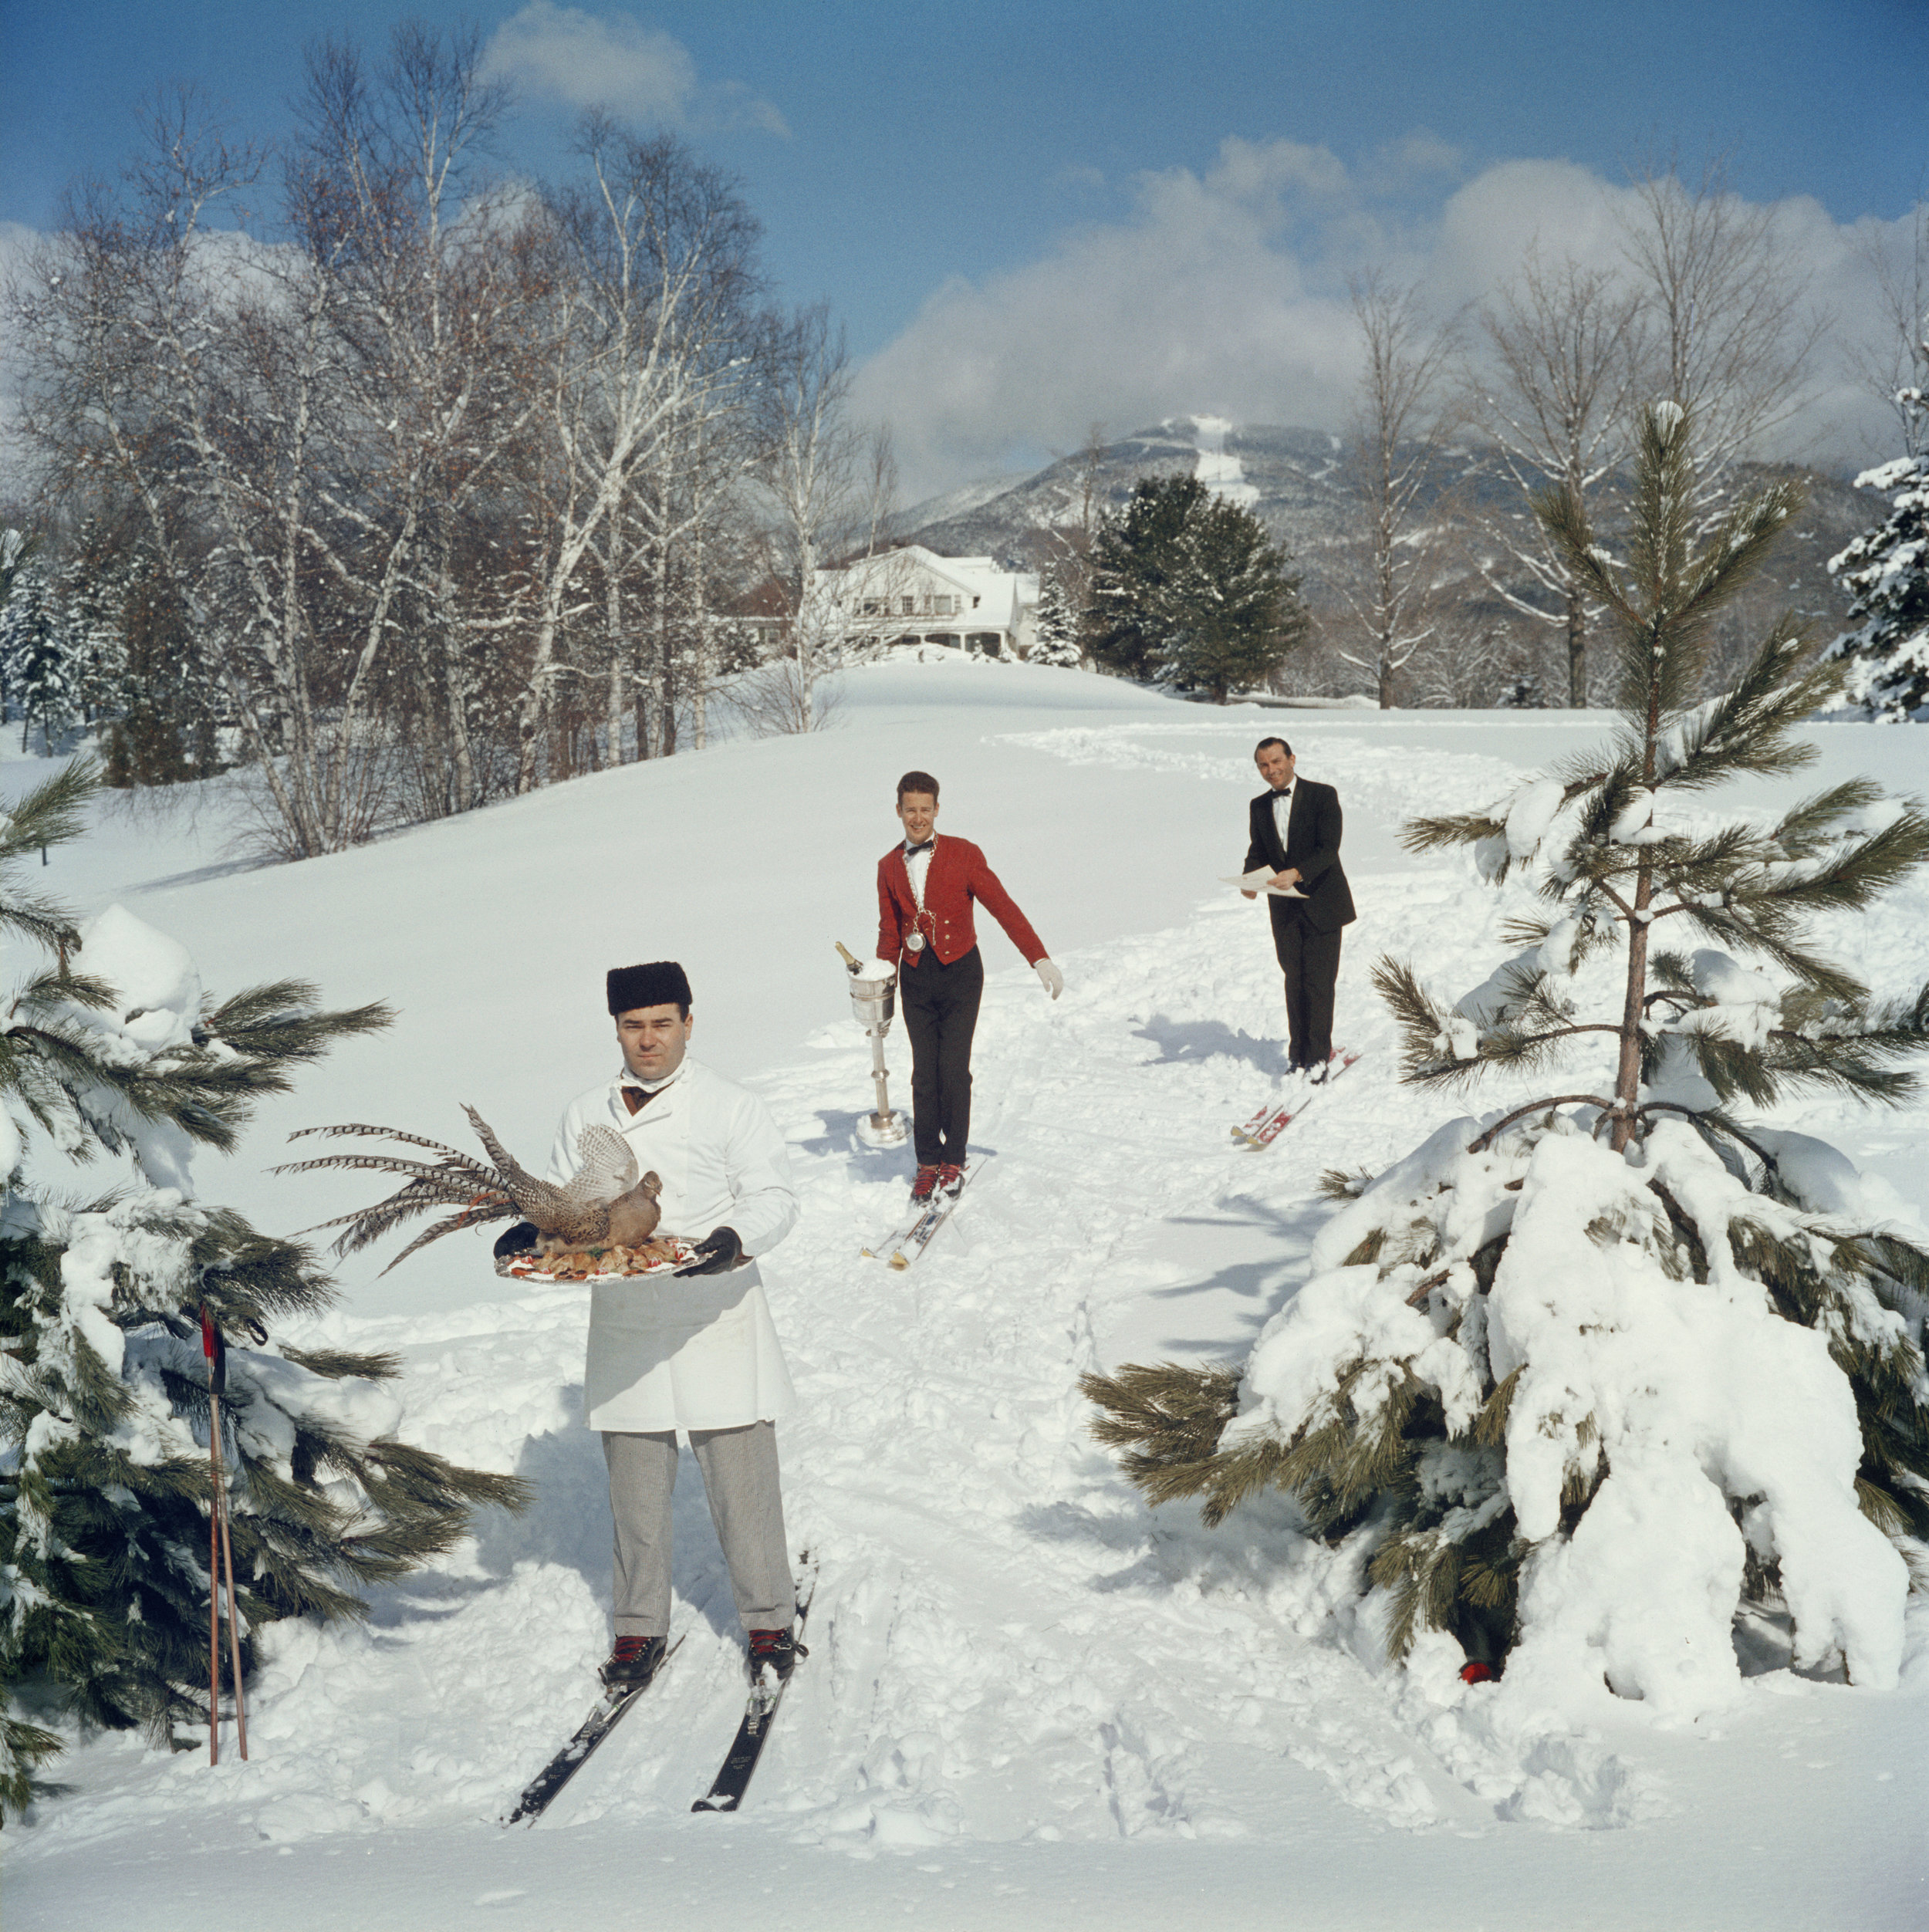 SLIM AARONS,  Skiing Waiters , 1960,courtesy Getty Image Archive